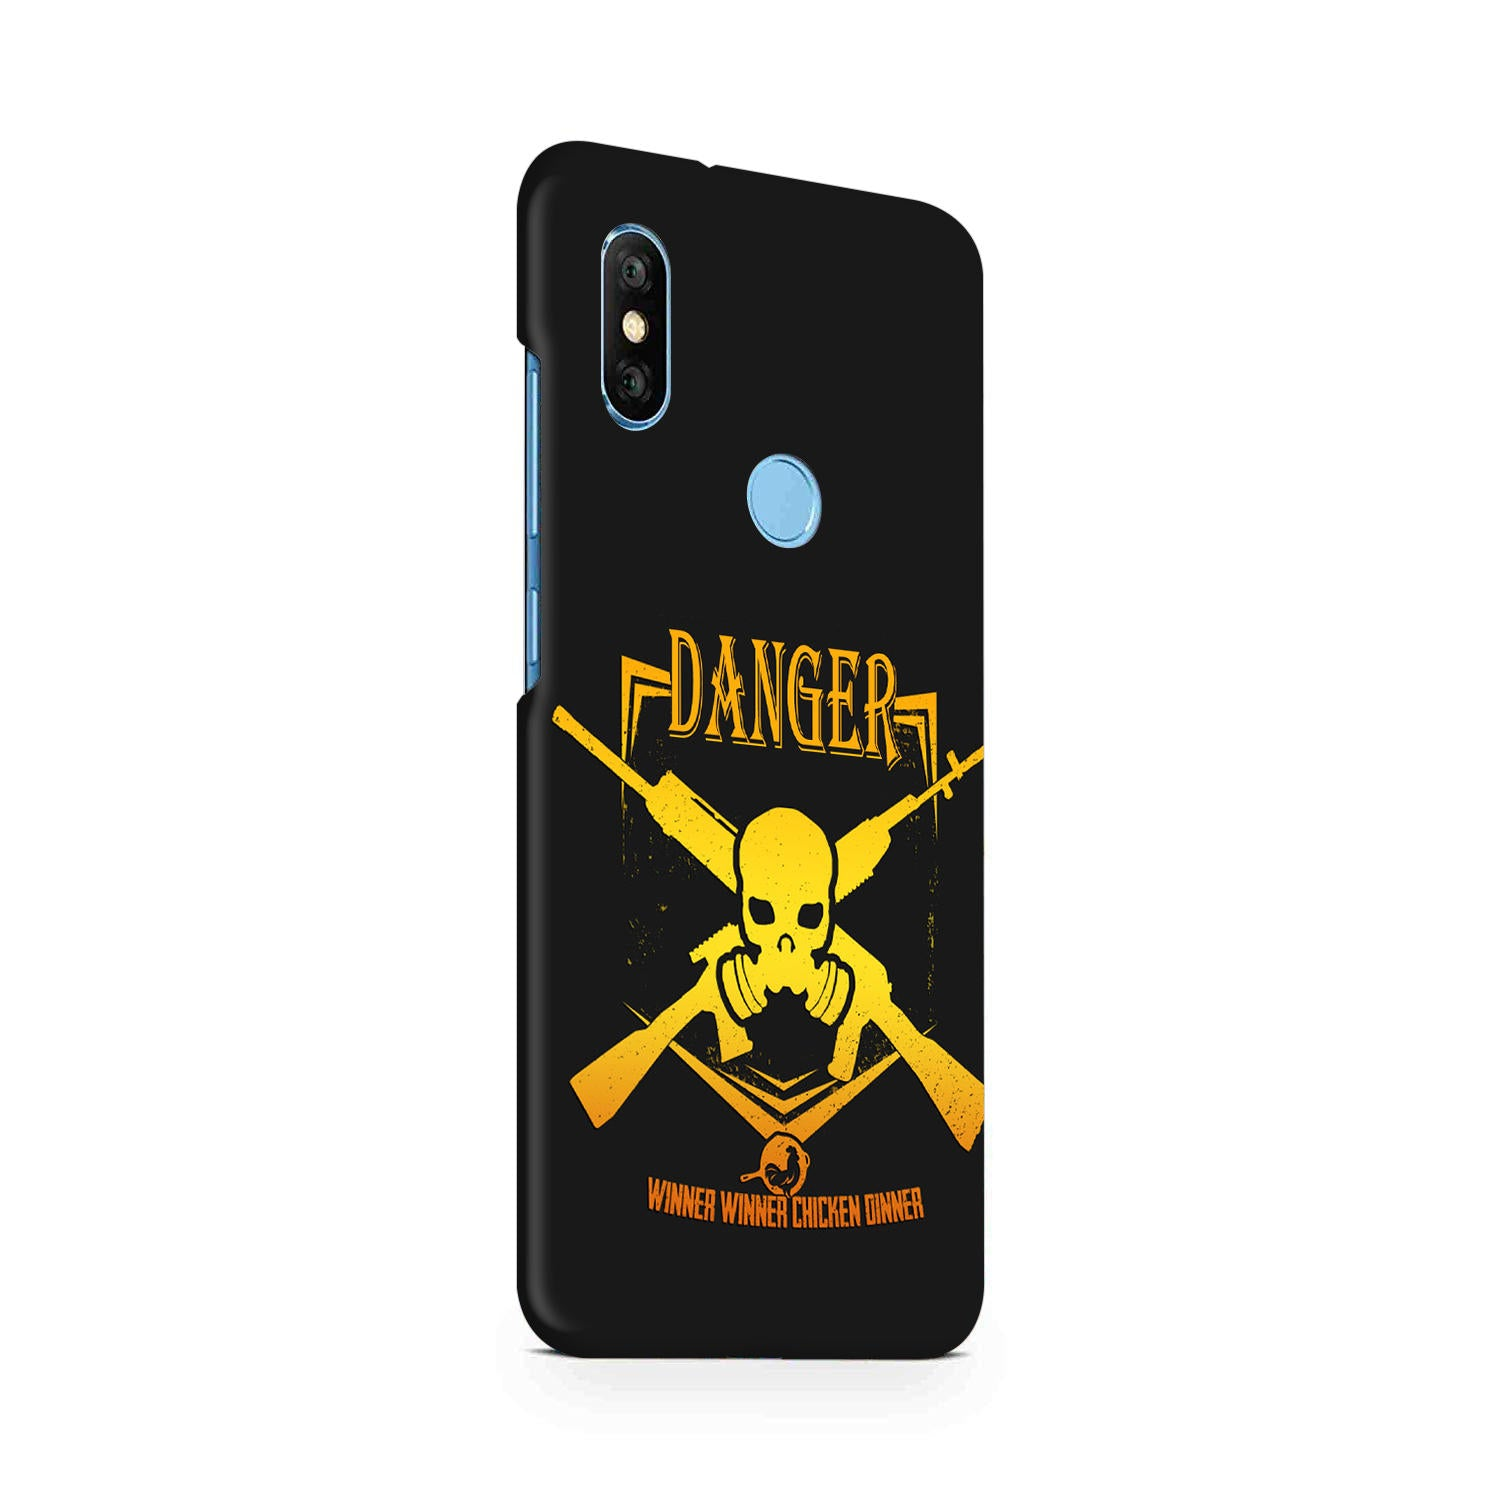 Danger Gun Sign Typography RedMi Note 6 Pro Mobile Cover Case - MADANYU